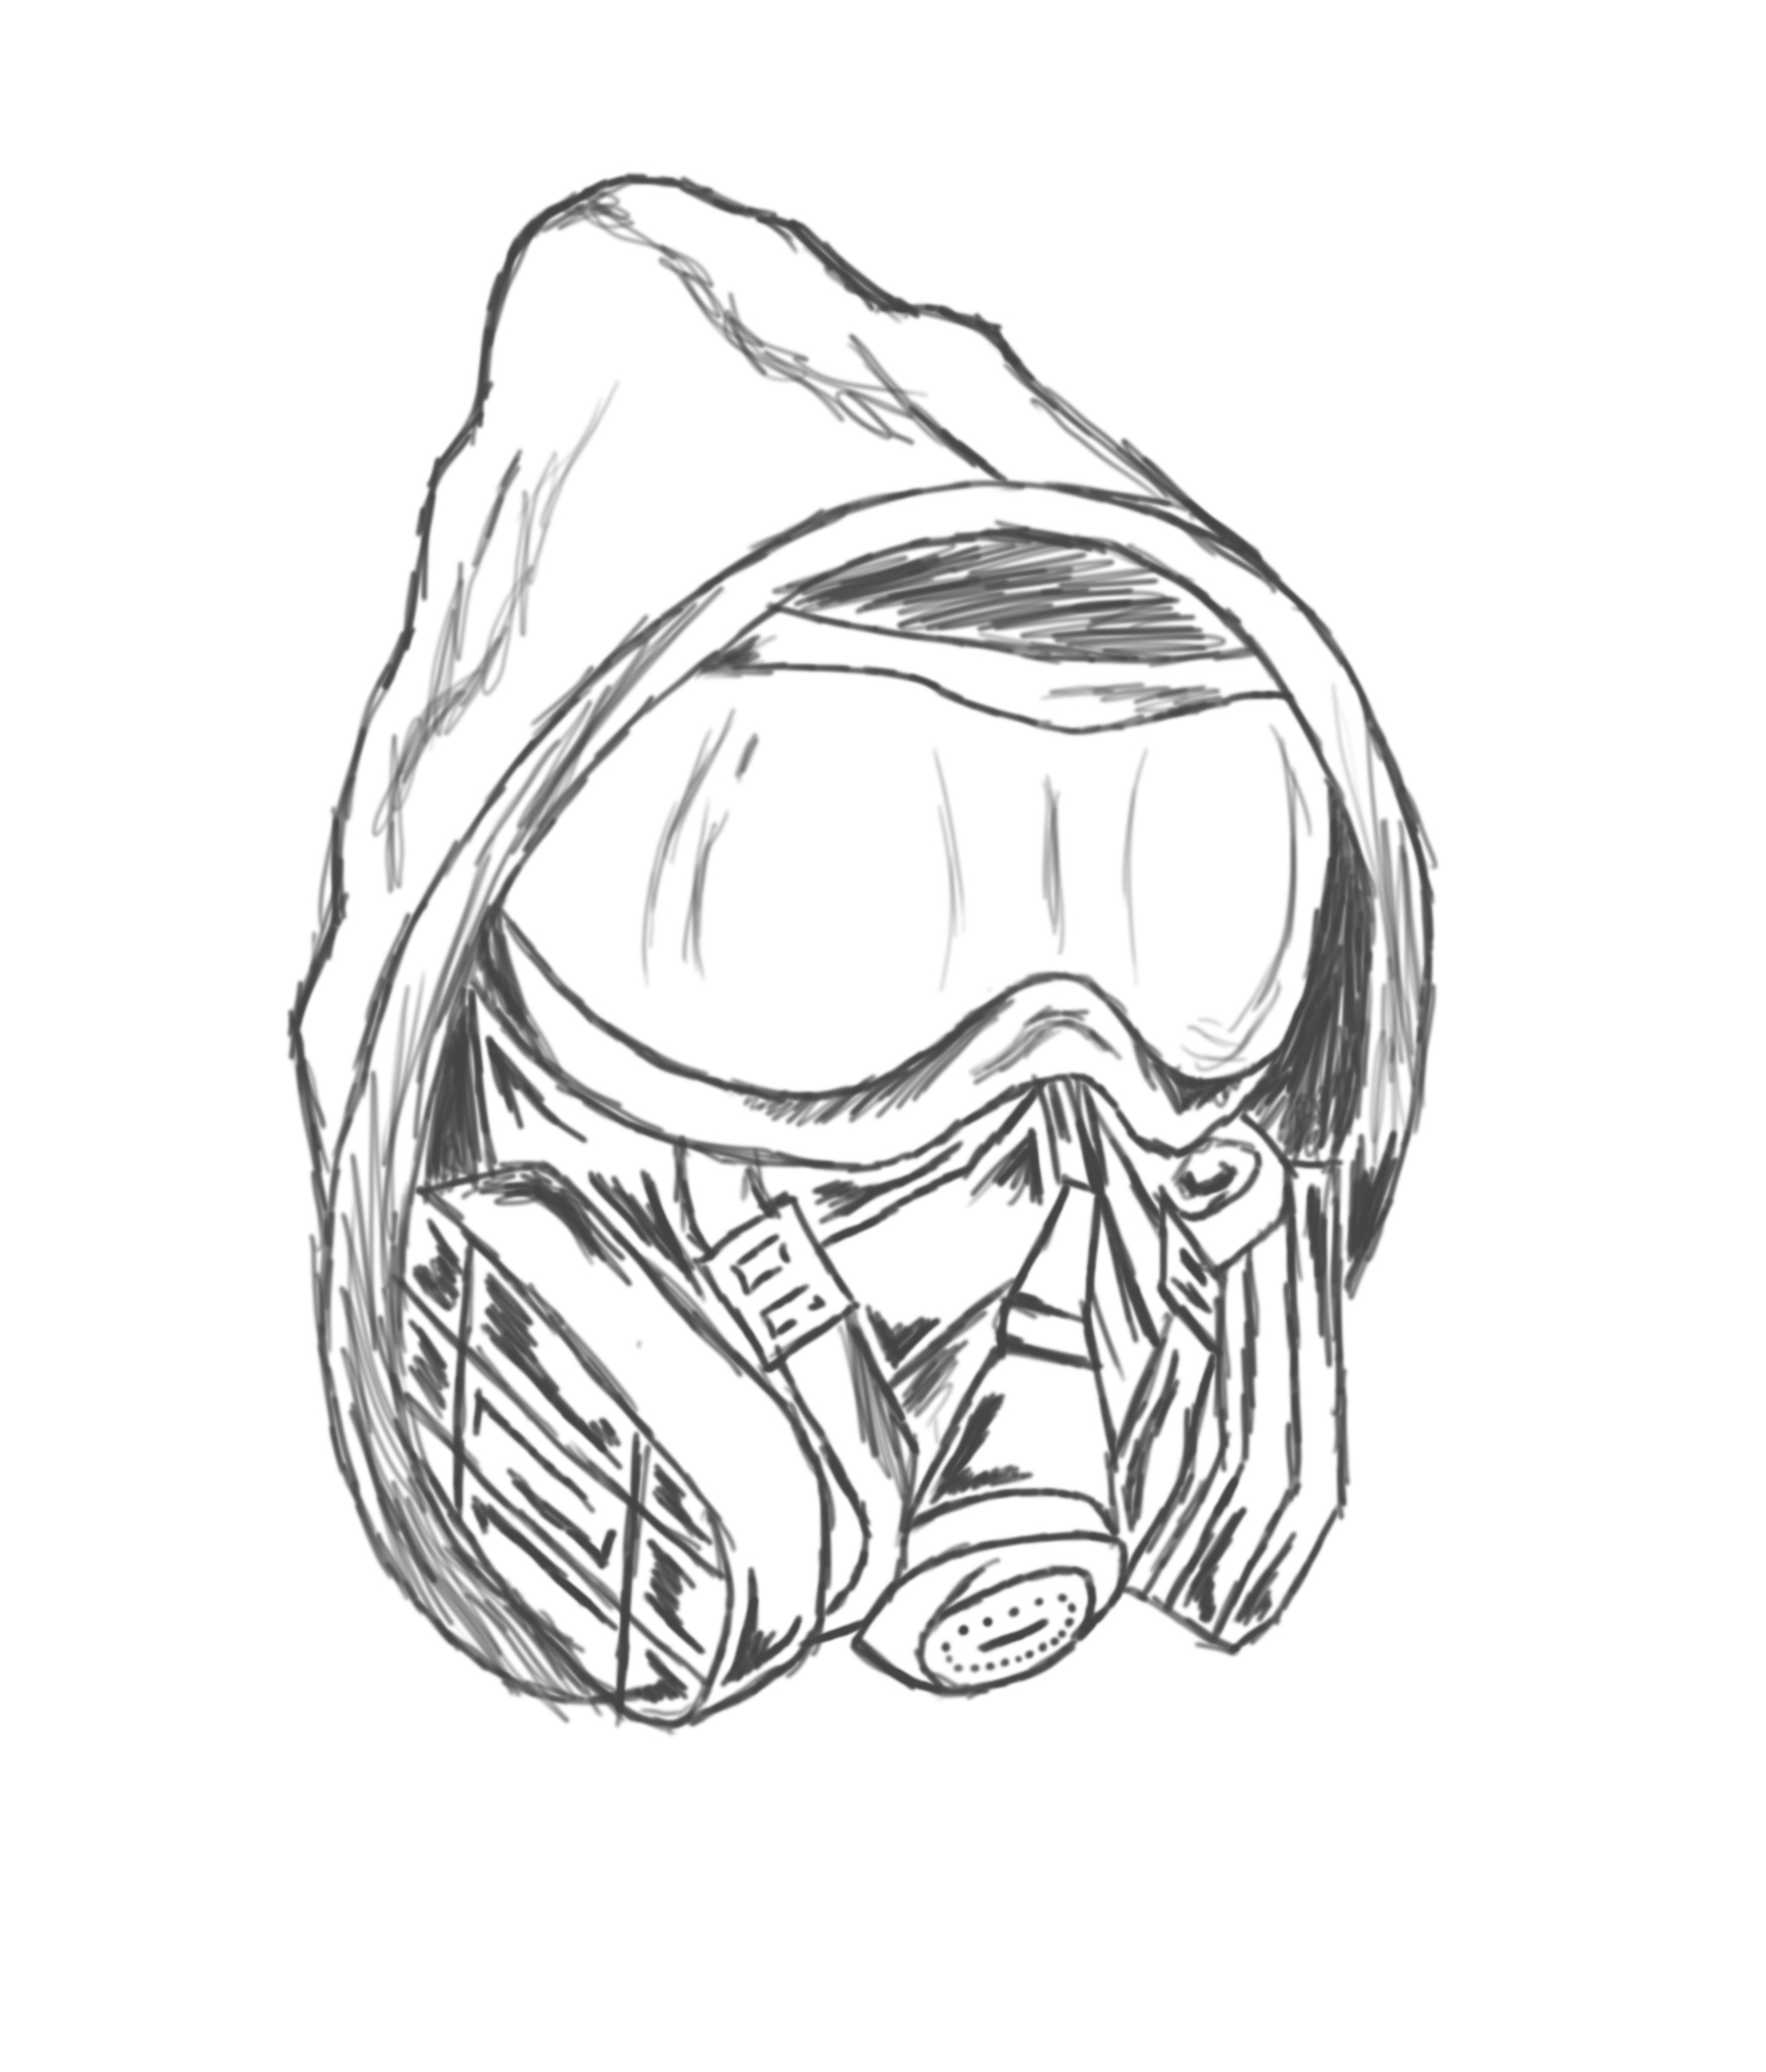 2041x2394 Graffiti Gas Mask Drawing Drawn Gas Mask Music